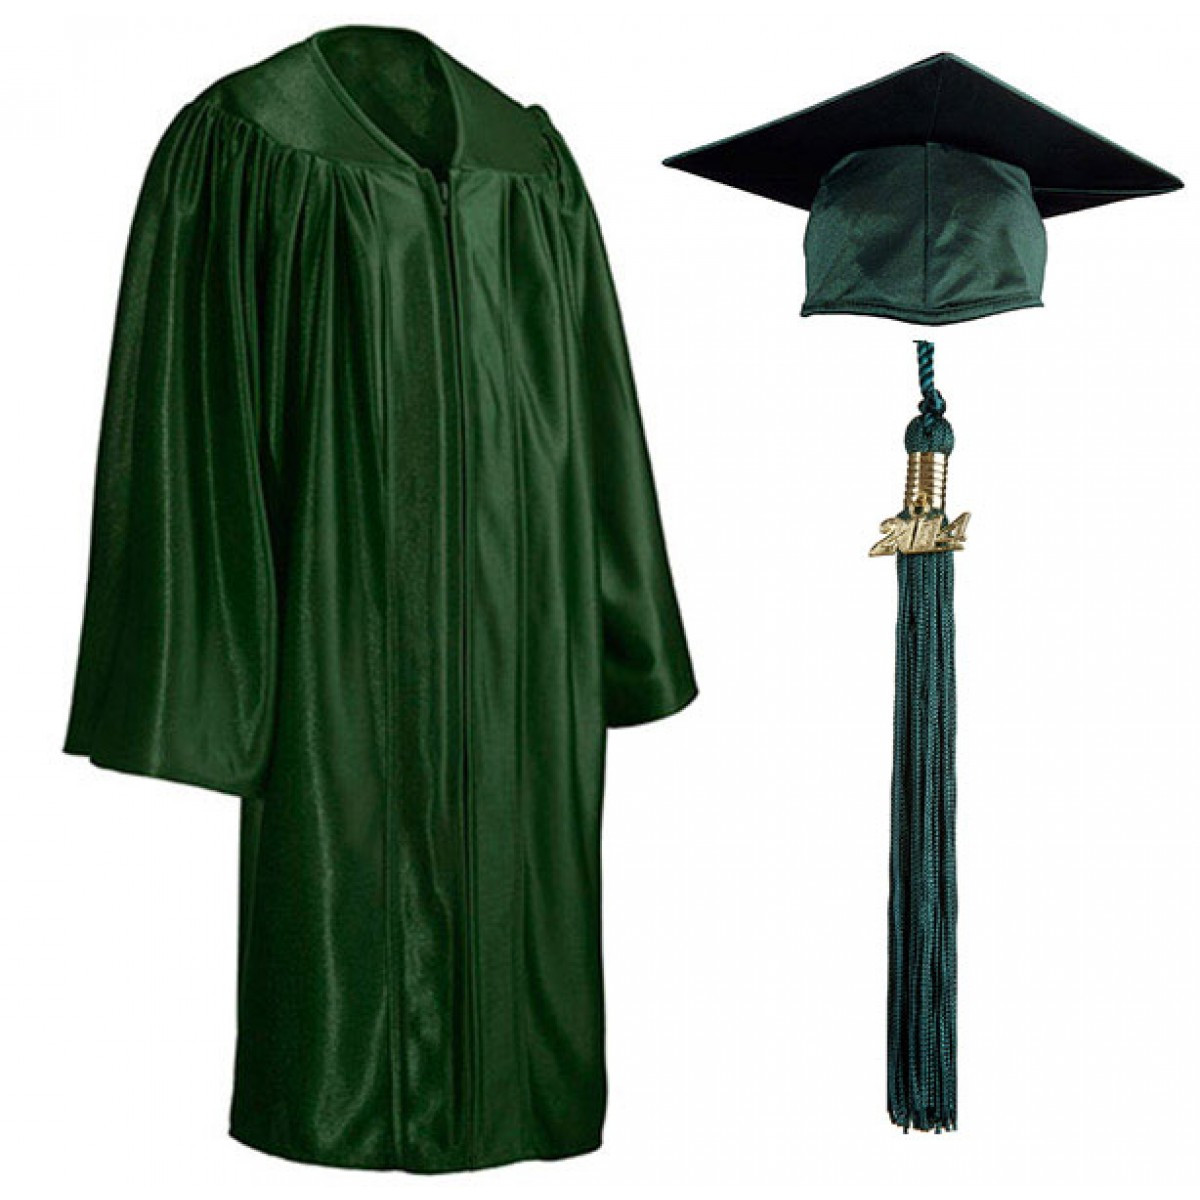 Child Shiny Forest Green Cap, Gown & Tassel - Cool School Studios